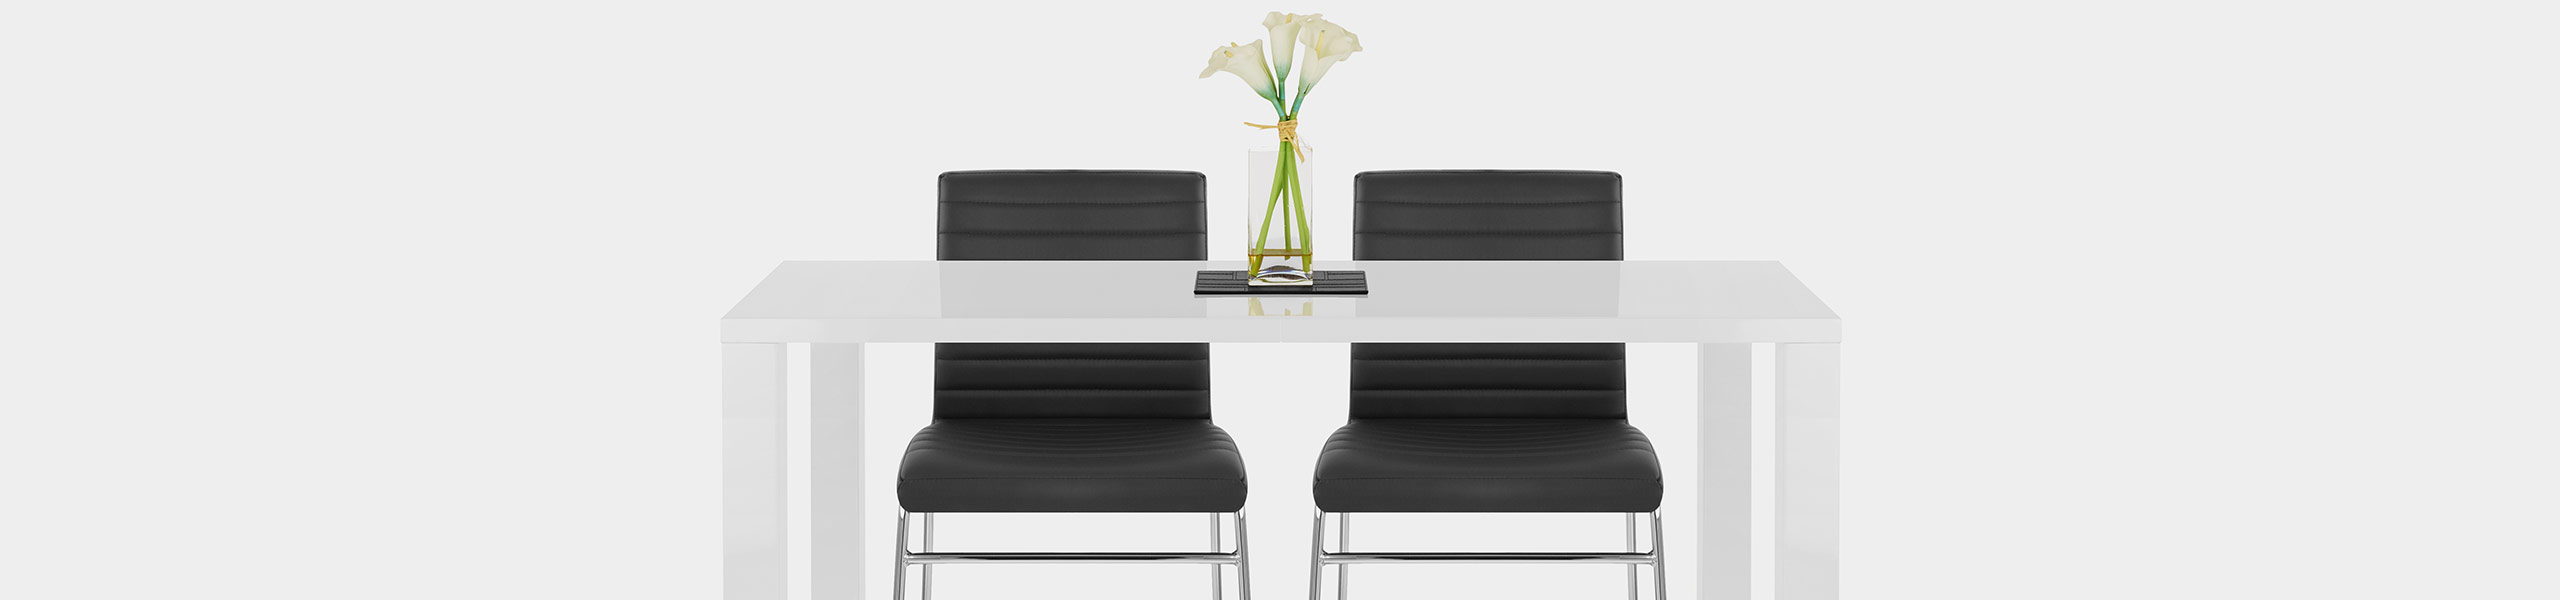 Panache Dining Chair Black Video Banner